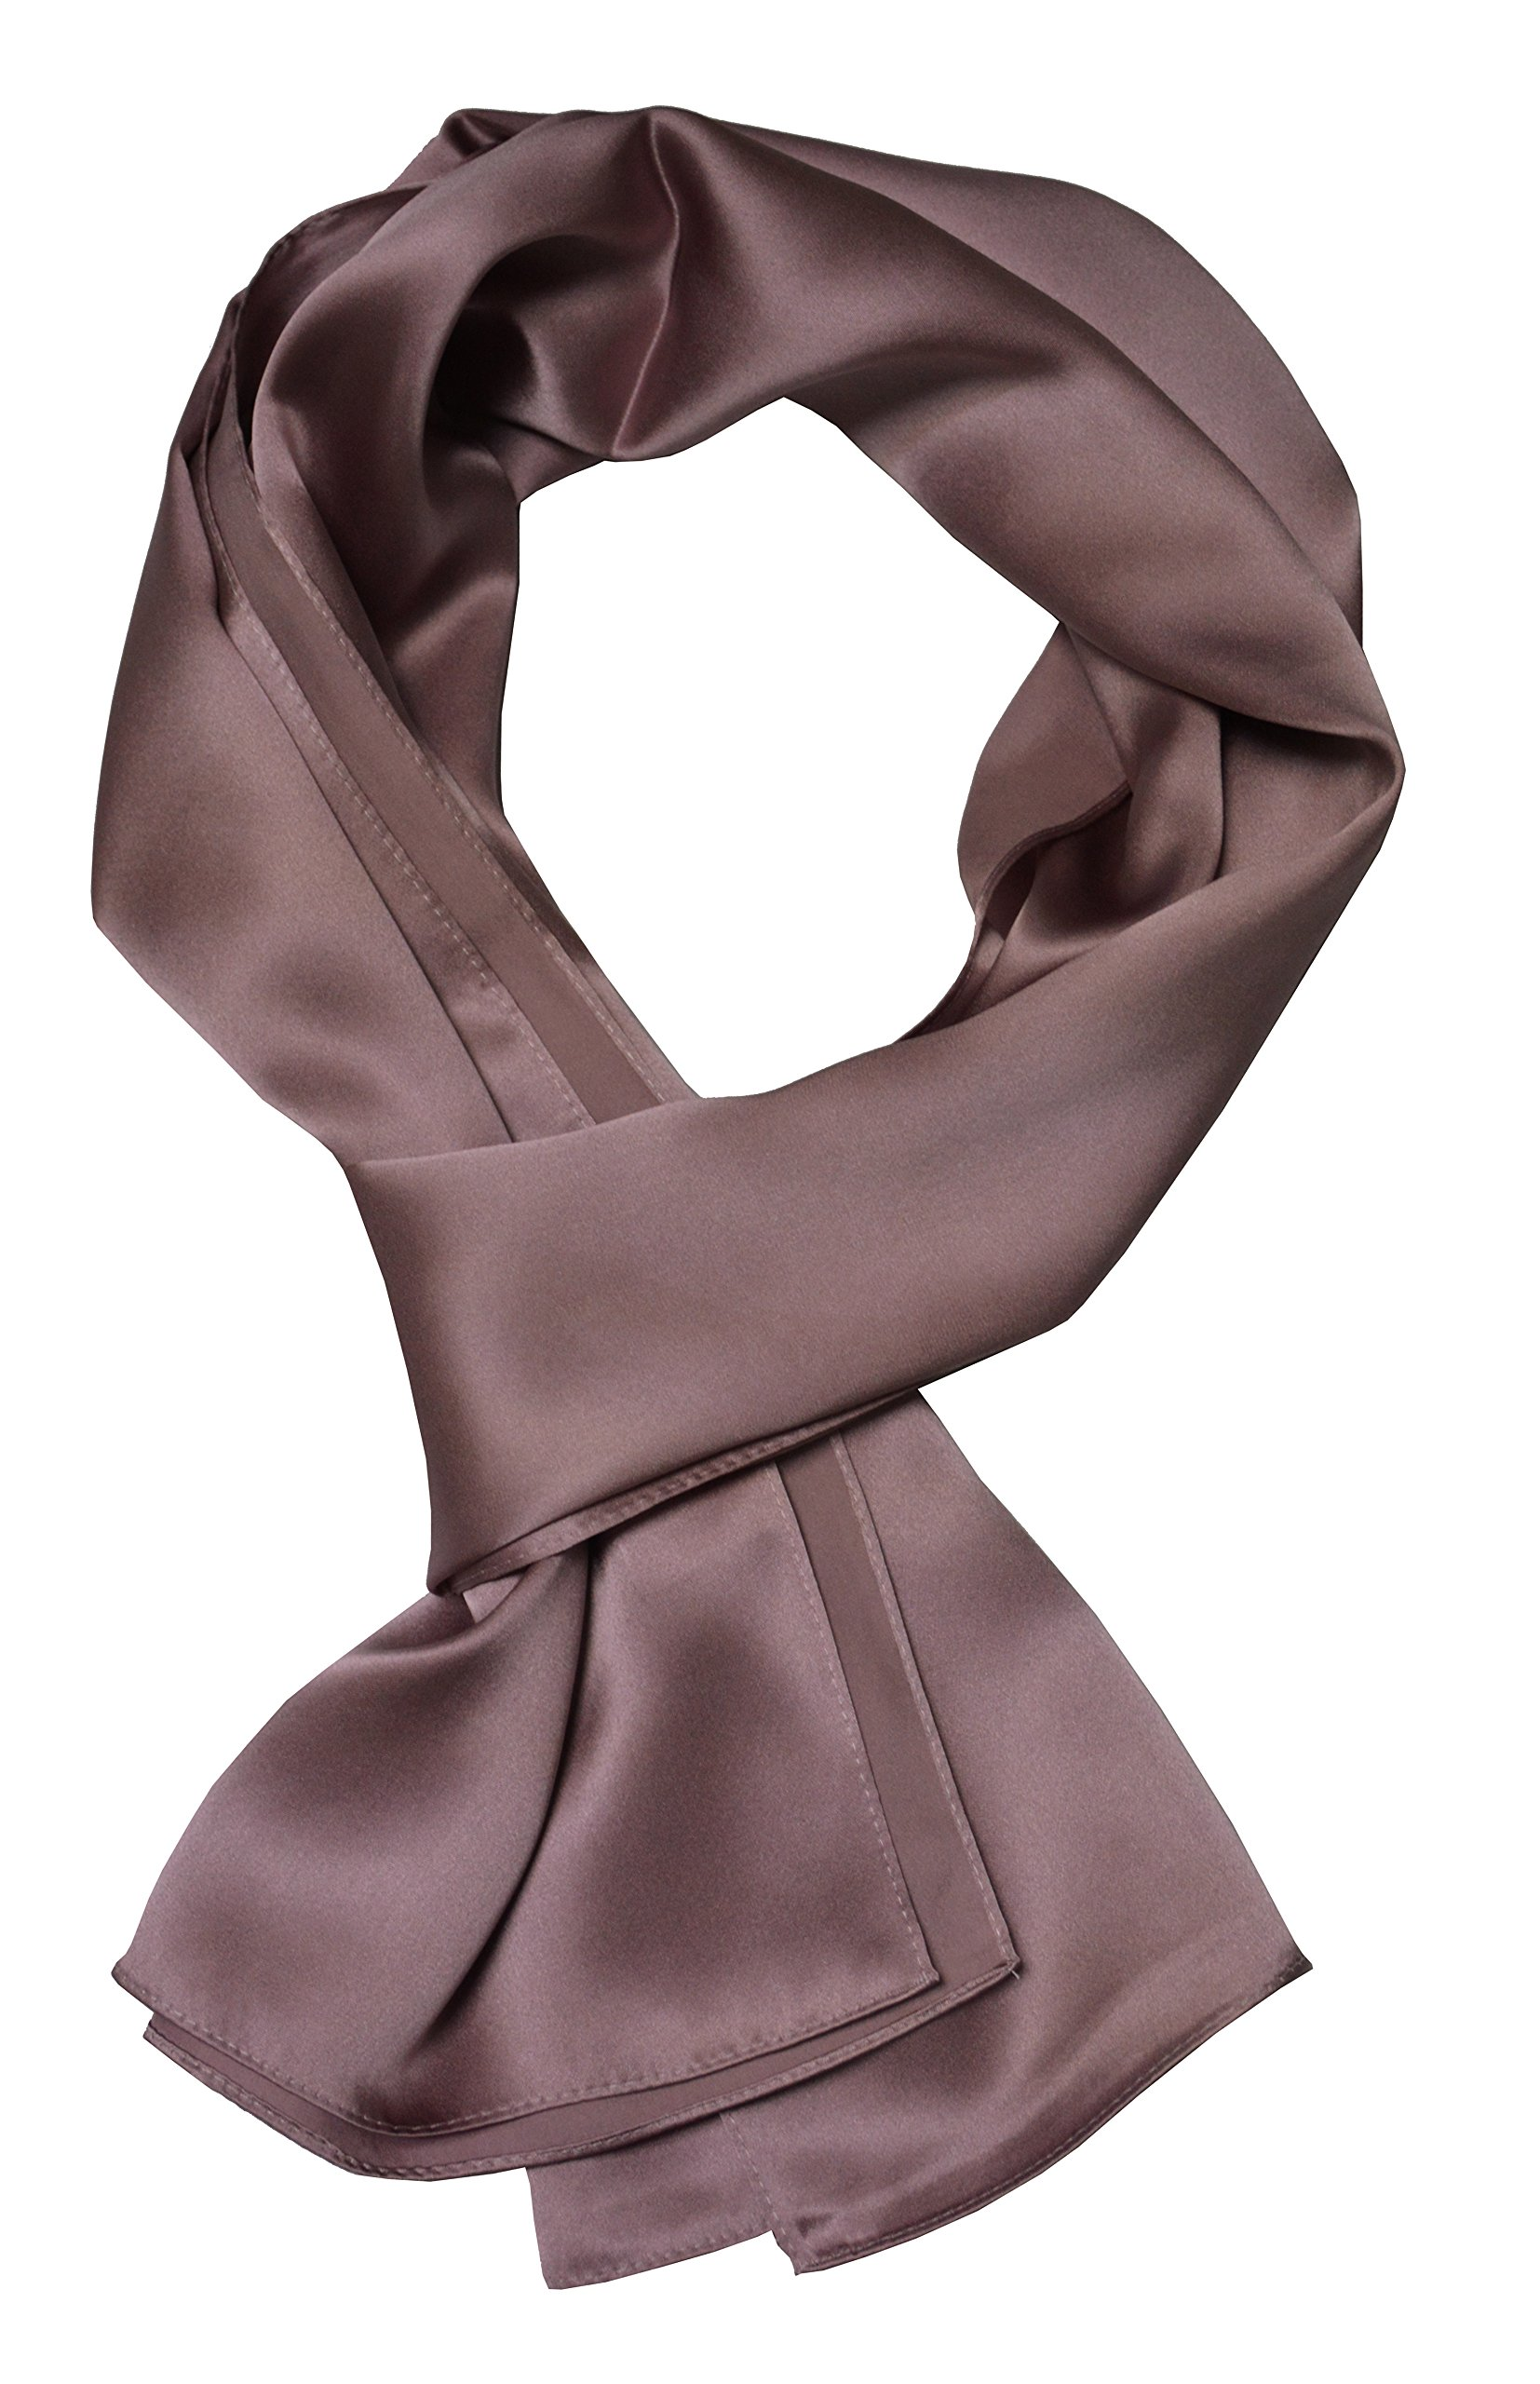 CameoBrown 70'' x 21'' 100% Silk Scarf, Fashion for Women or Men Perfect Gift solid Color Accessory